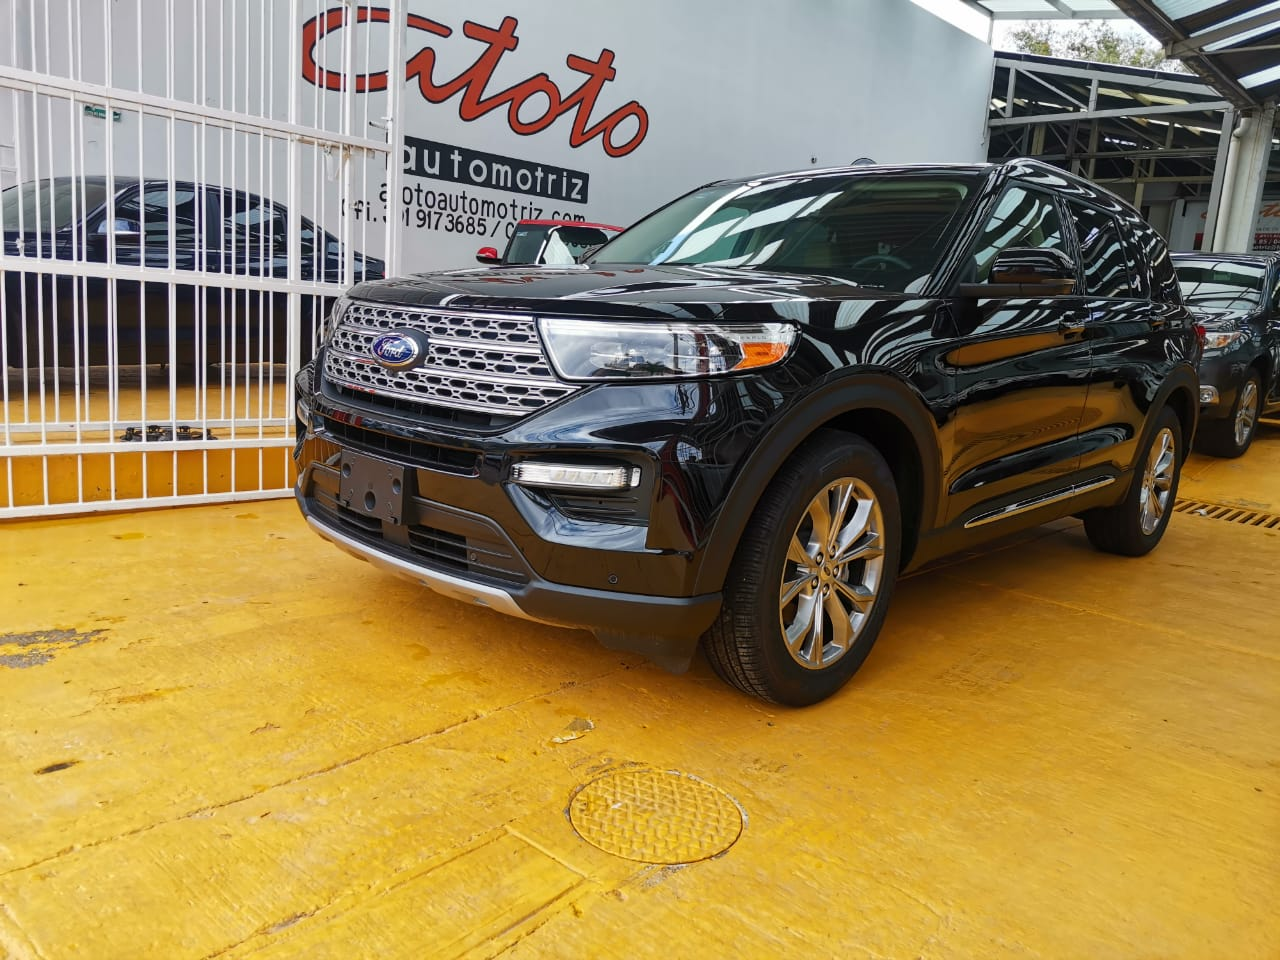 Ford Explorer, 2020 Limited RWD